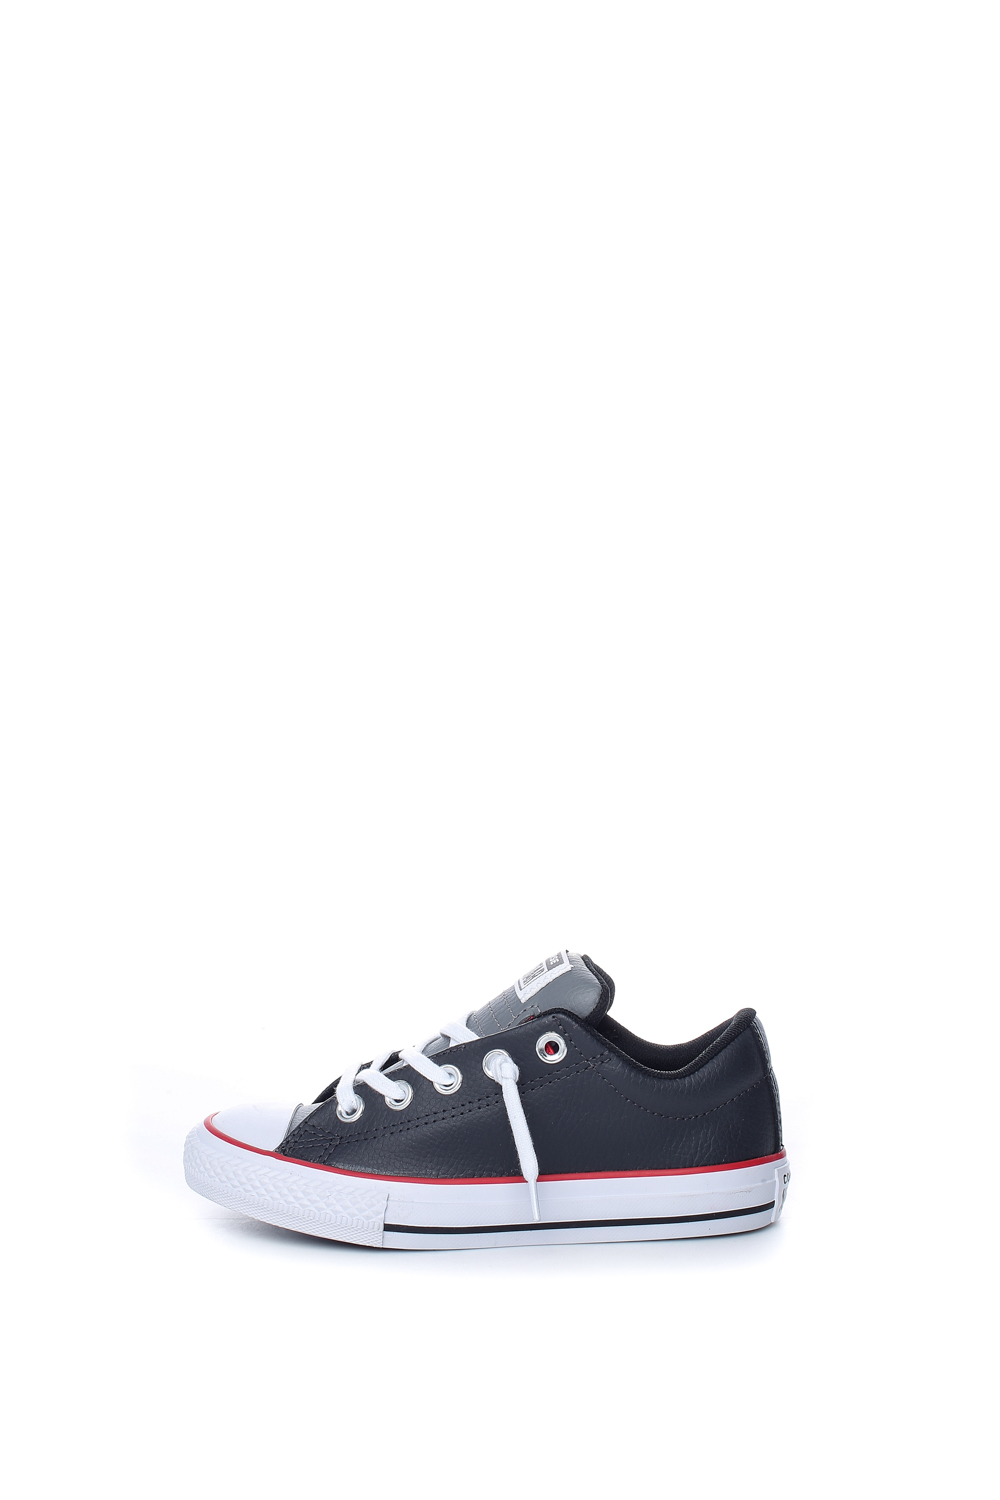 -40% Collective Online CONVERSE – Παιδικά sneakers CHUCK TAYLOR ALL STAR  STREET μαύρα 423192c46b7